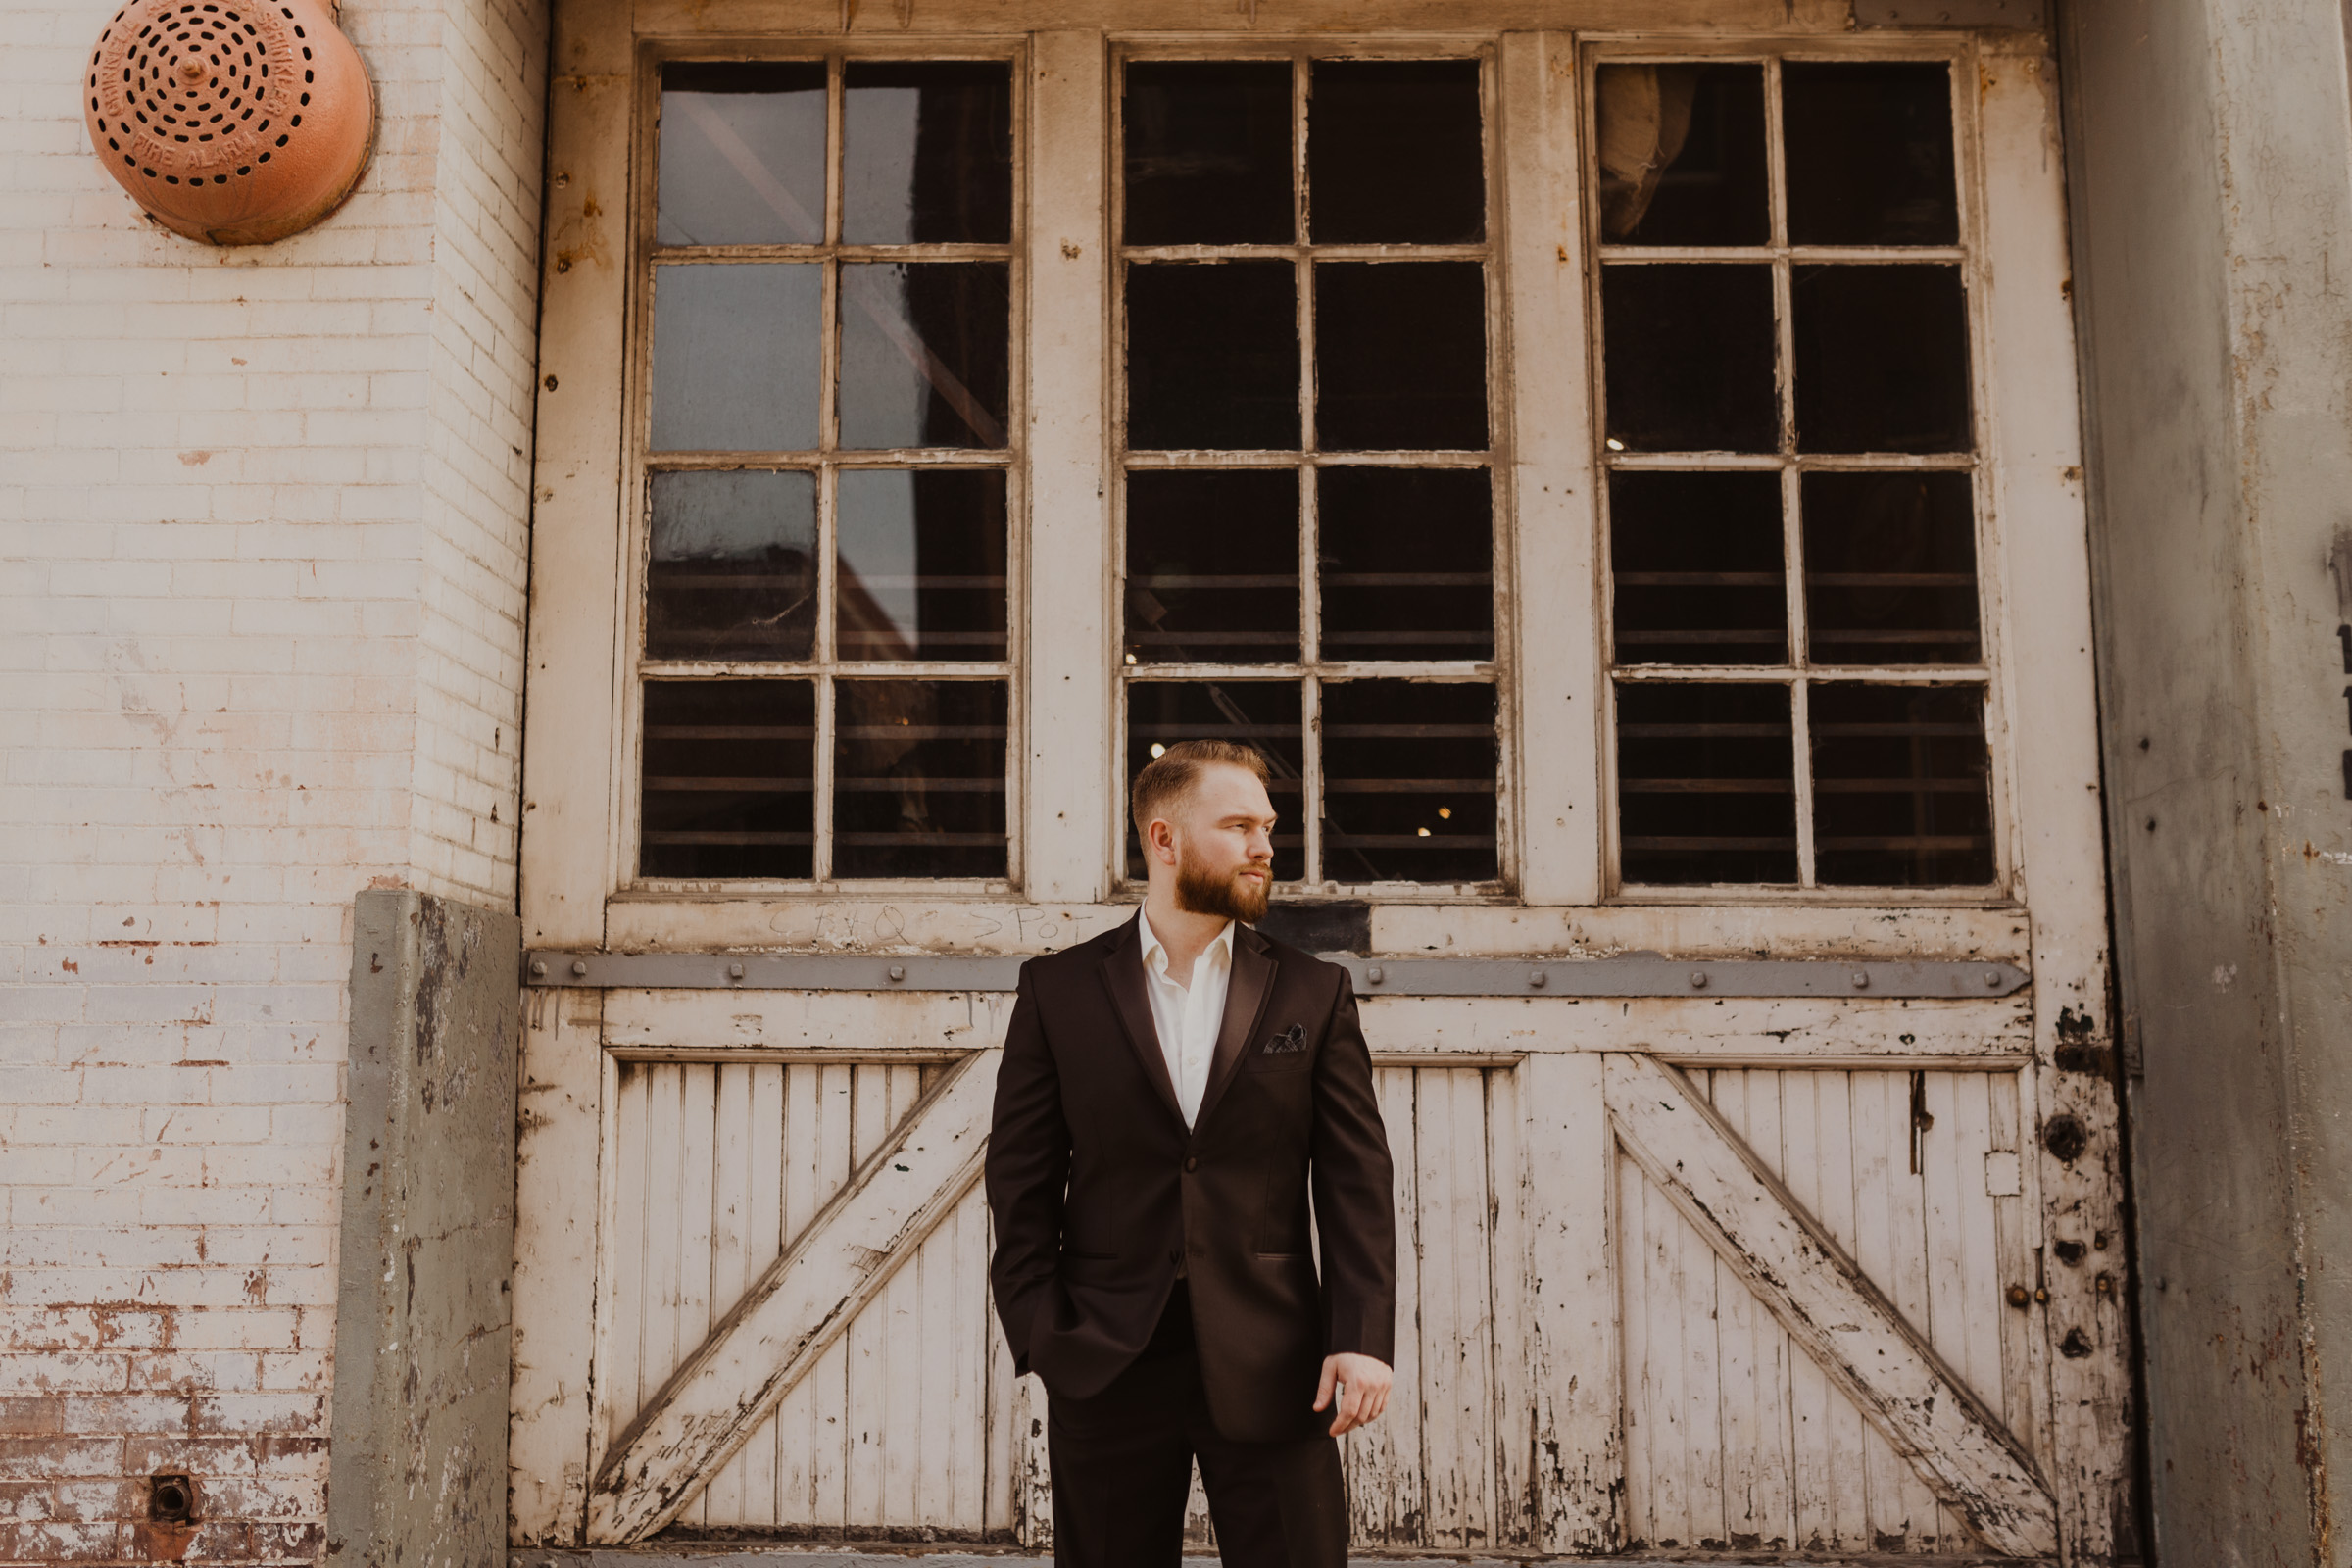 alyssa barletter photography styled shoot wedding inspiration kansas city west bottoms photographer motorcycle edgy intimate-26.jpg